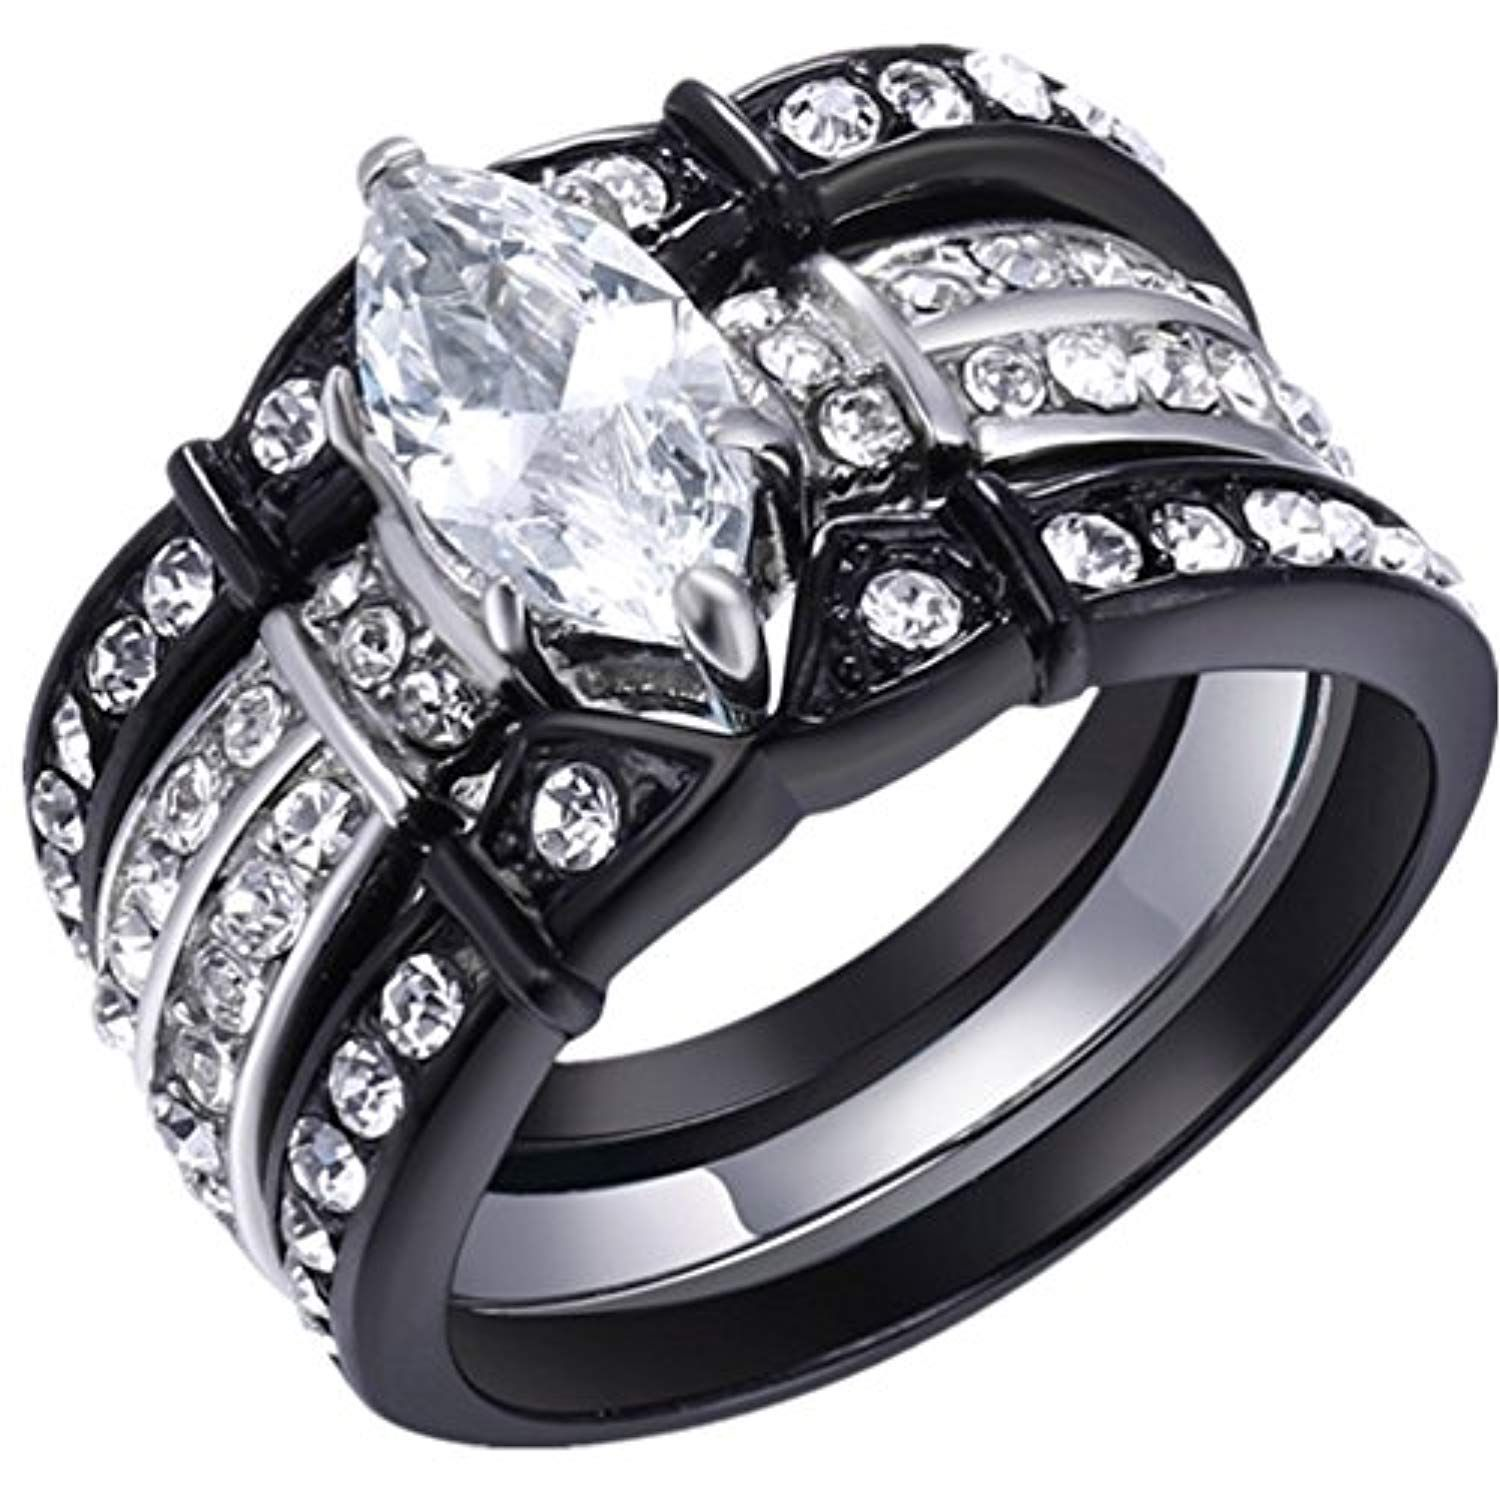 Black wedding ring set stainless steel marquise cubic